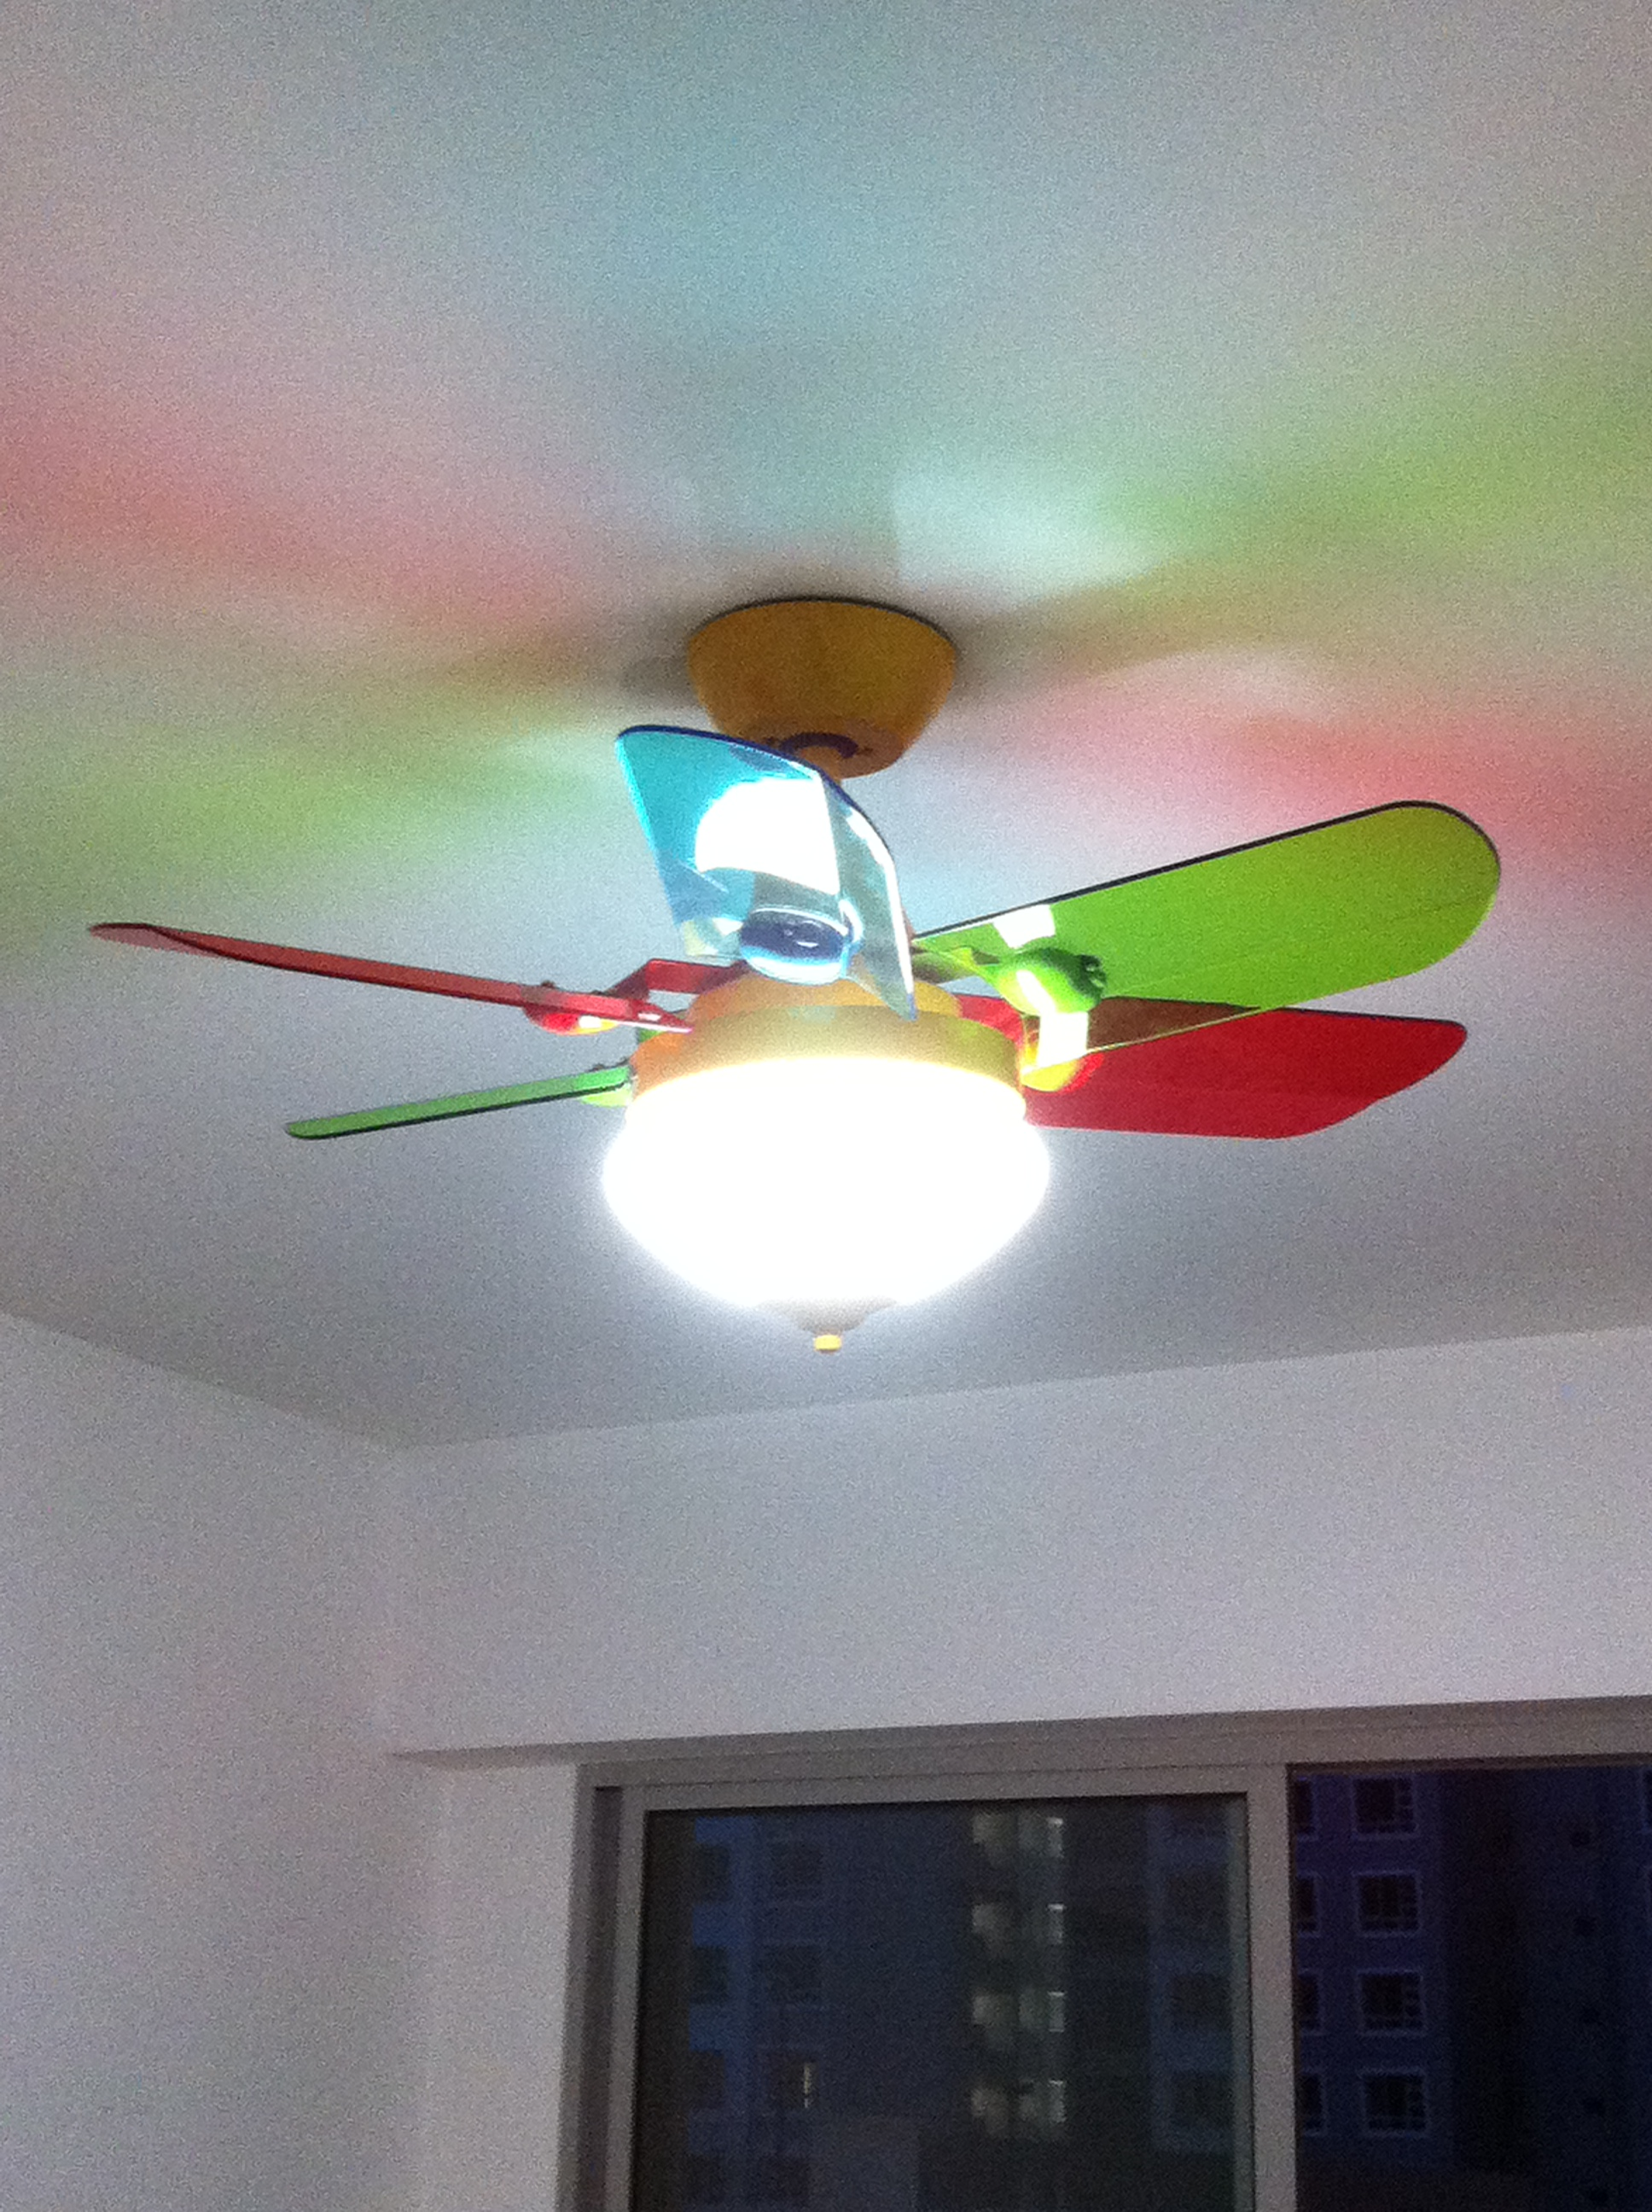 Comceiling Fans For Kids Rooms : Roundabout Ceiling Fan, Kids Room Ceiling Fans For Kids Room This Fan ...